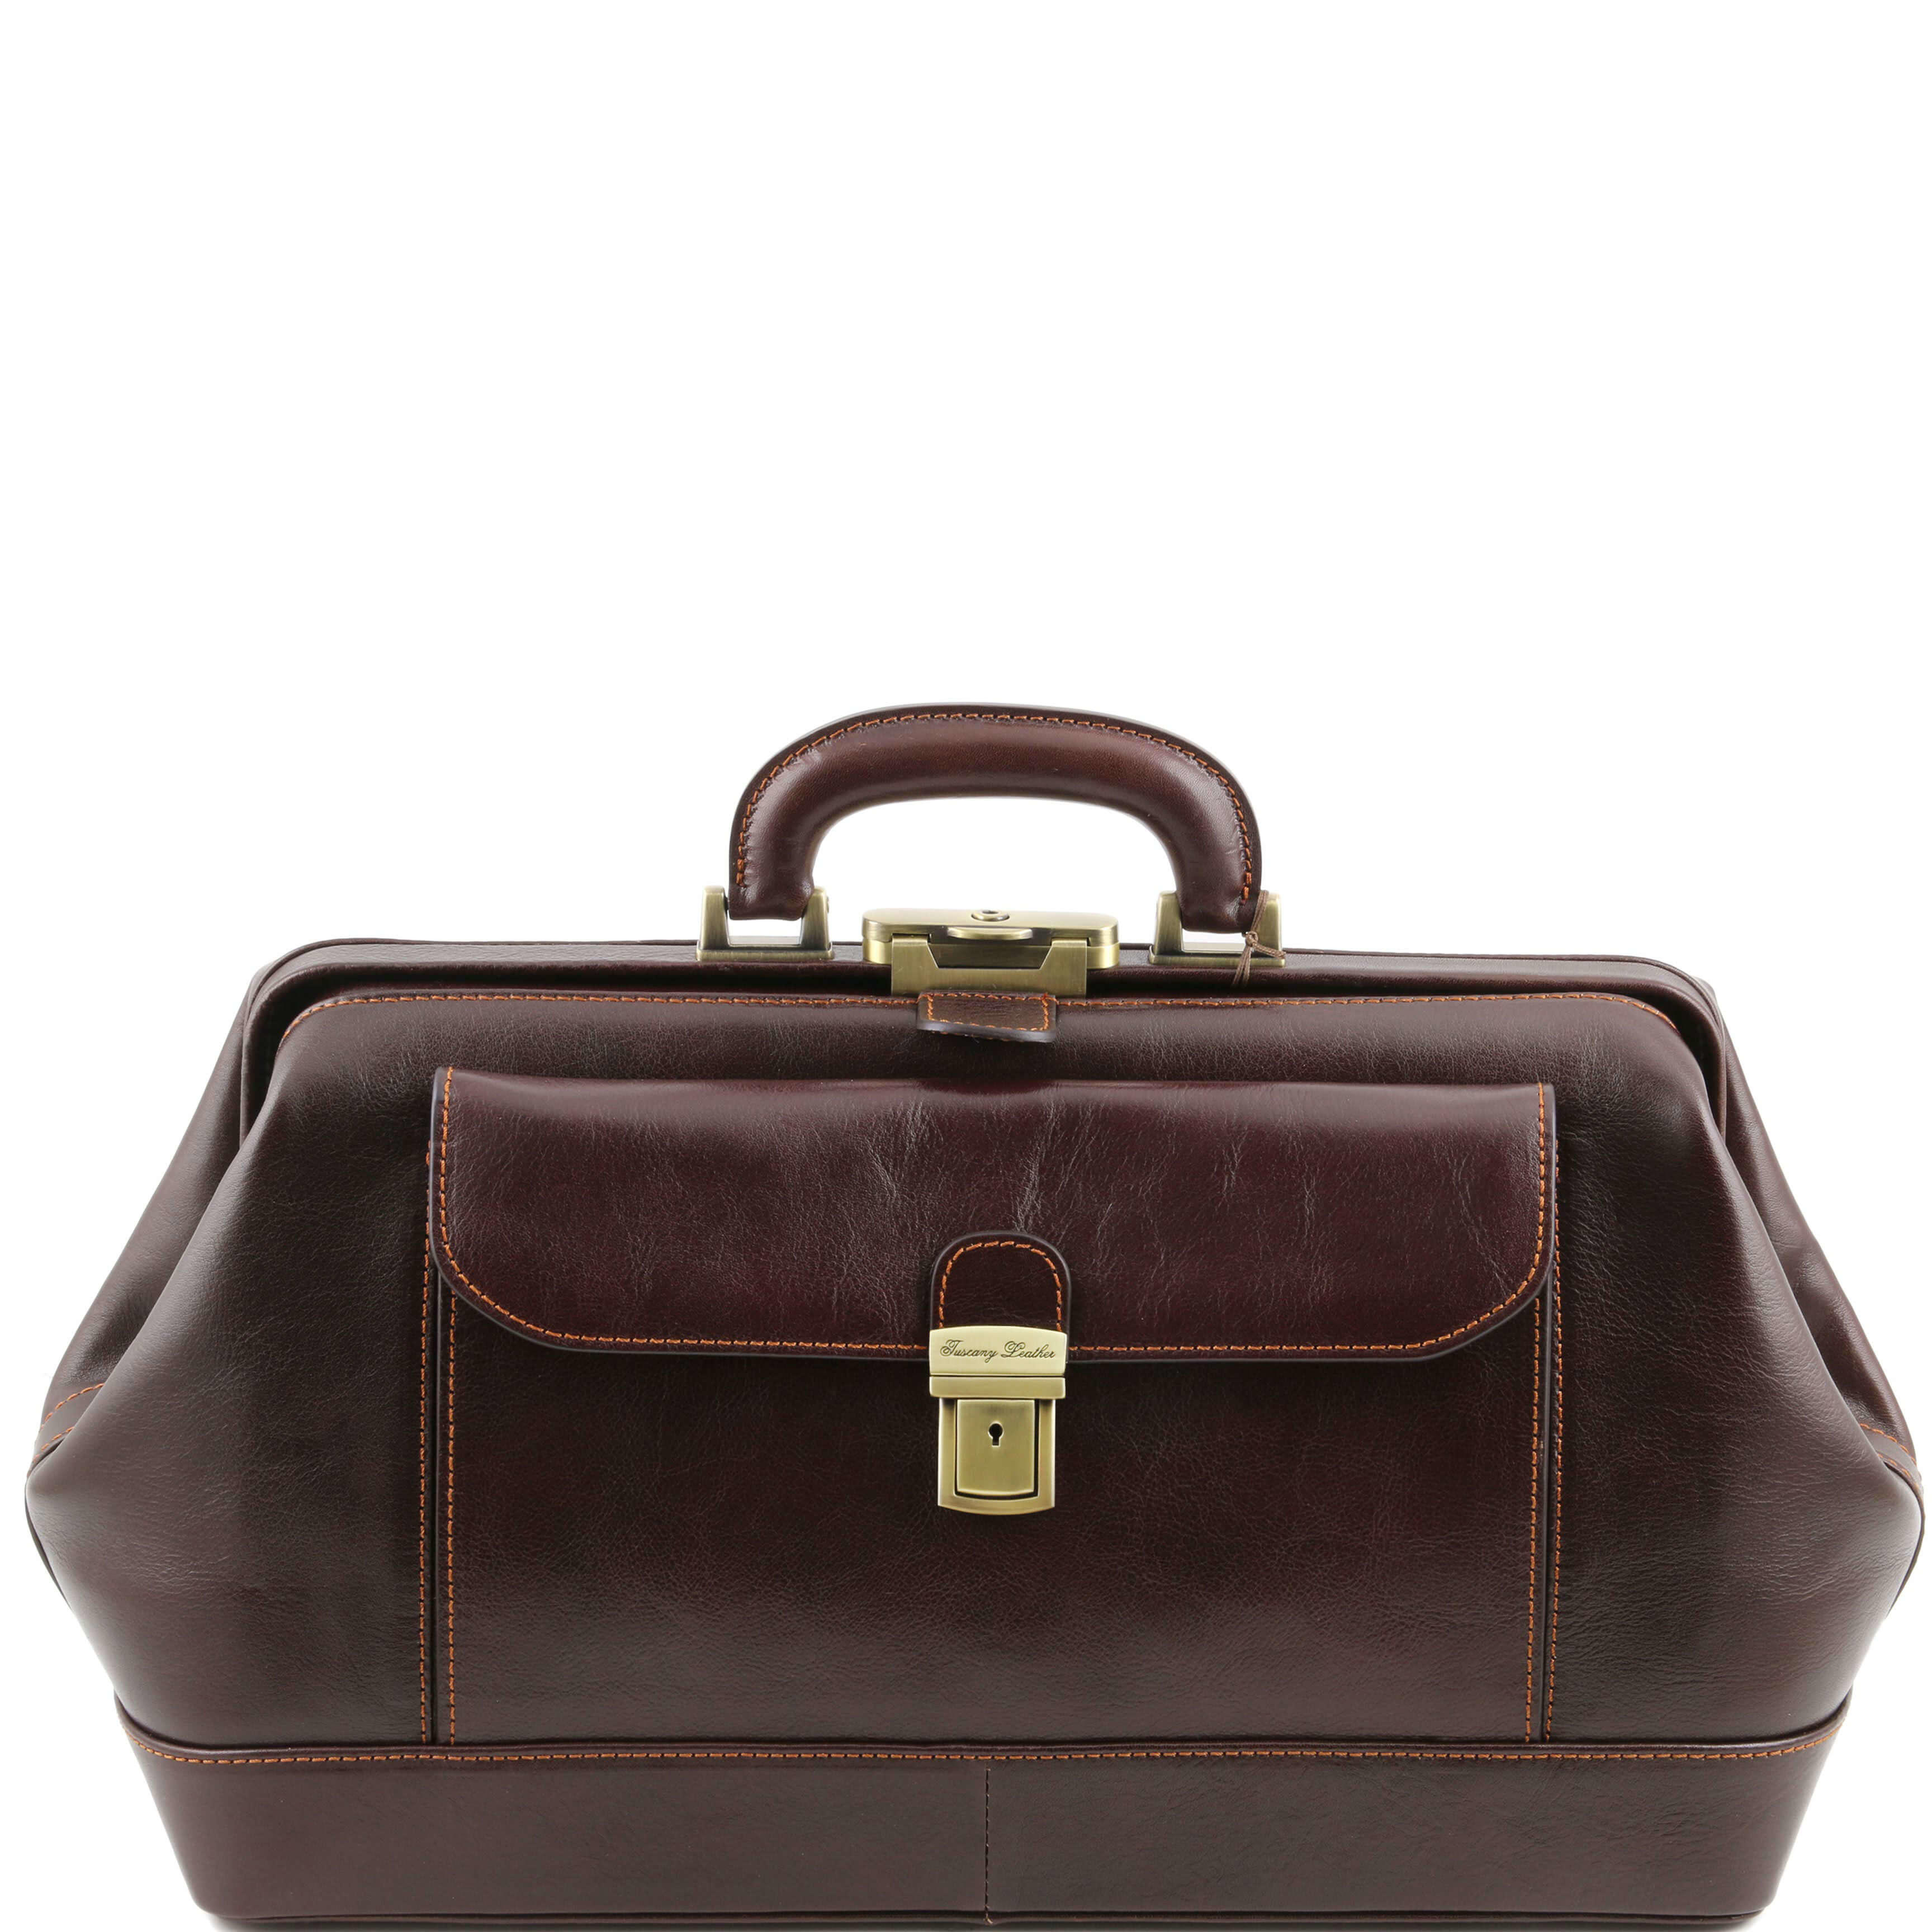 TL141298 Bernini Leather Doctors Bag - Holds iPad's etc - Dark B